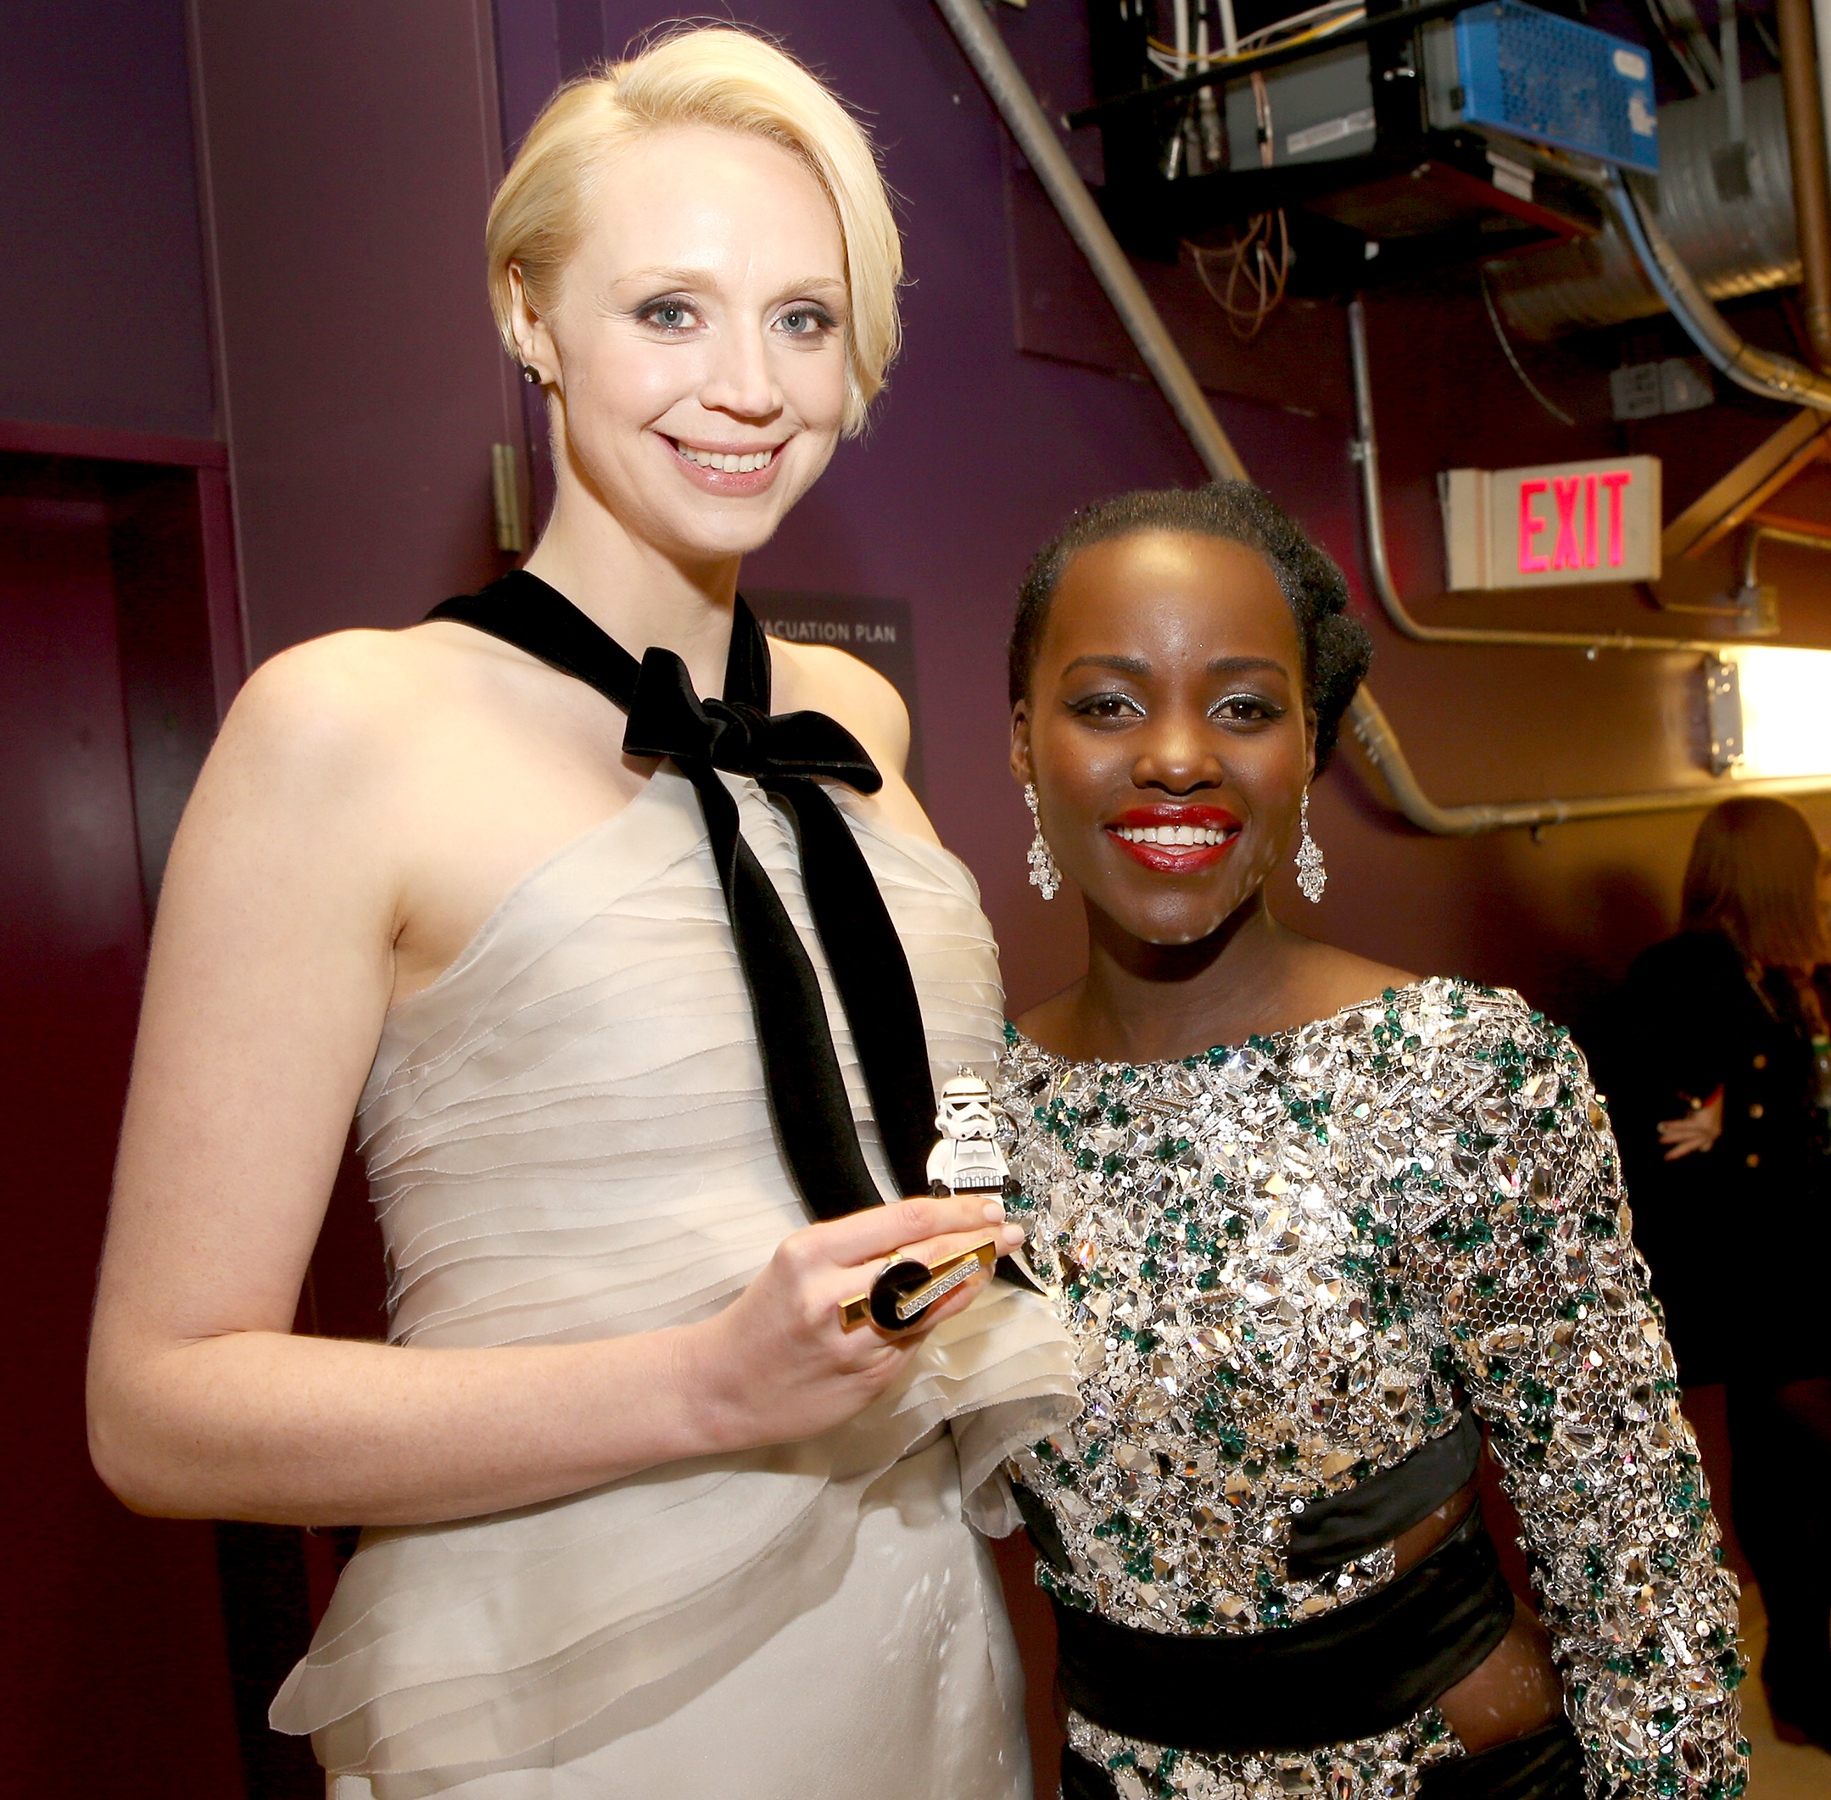 Gwendoline Christie and Lupita Nyong'o attend the world premiere of